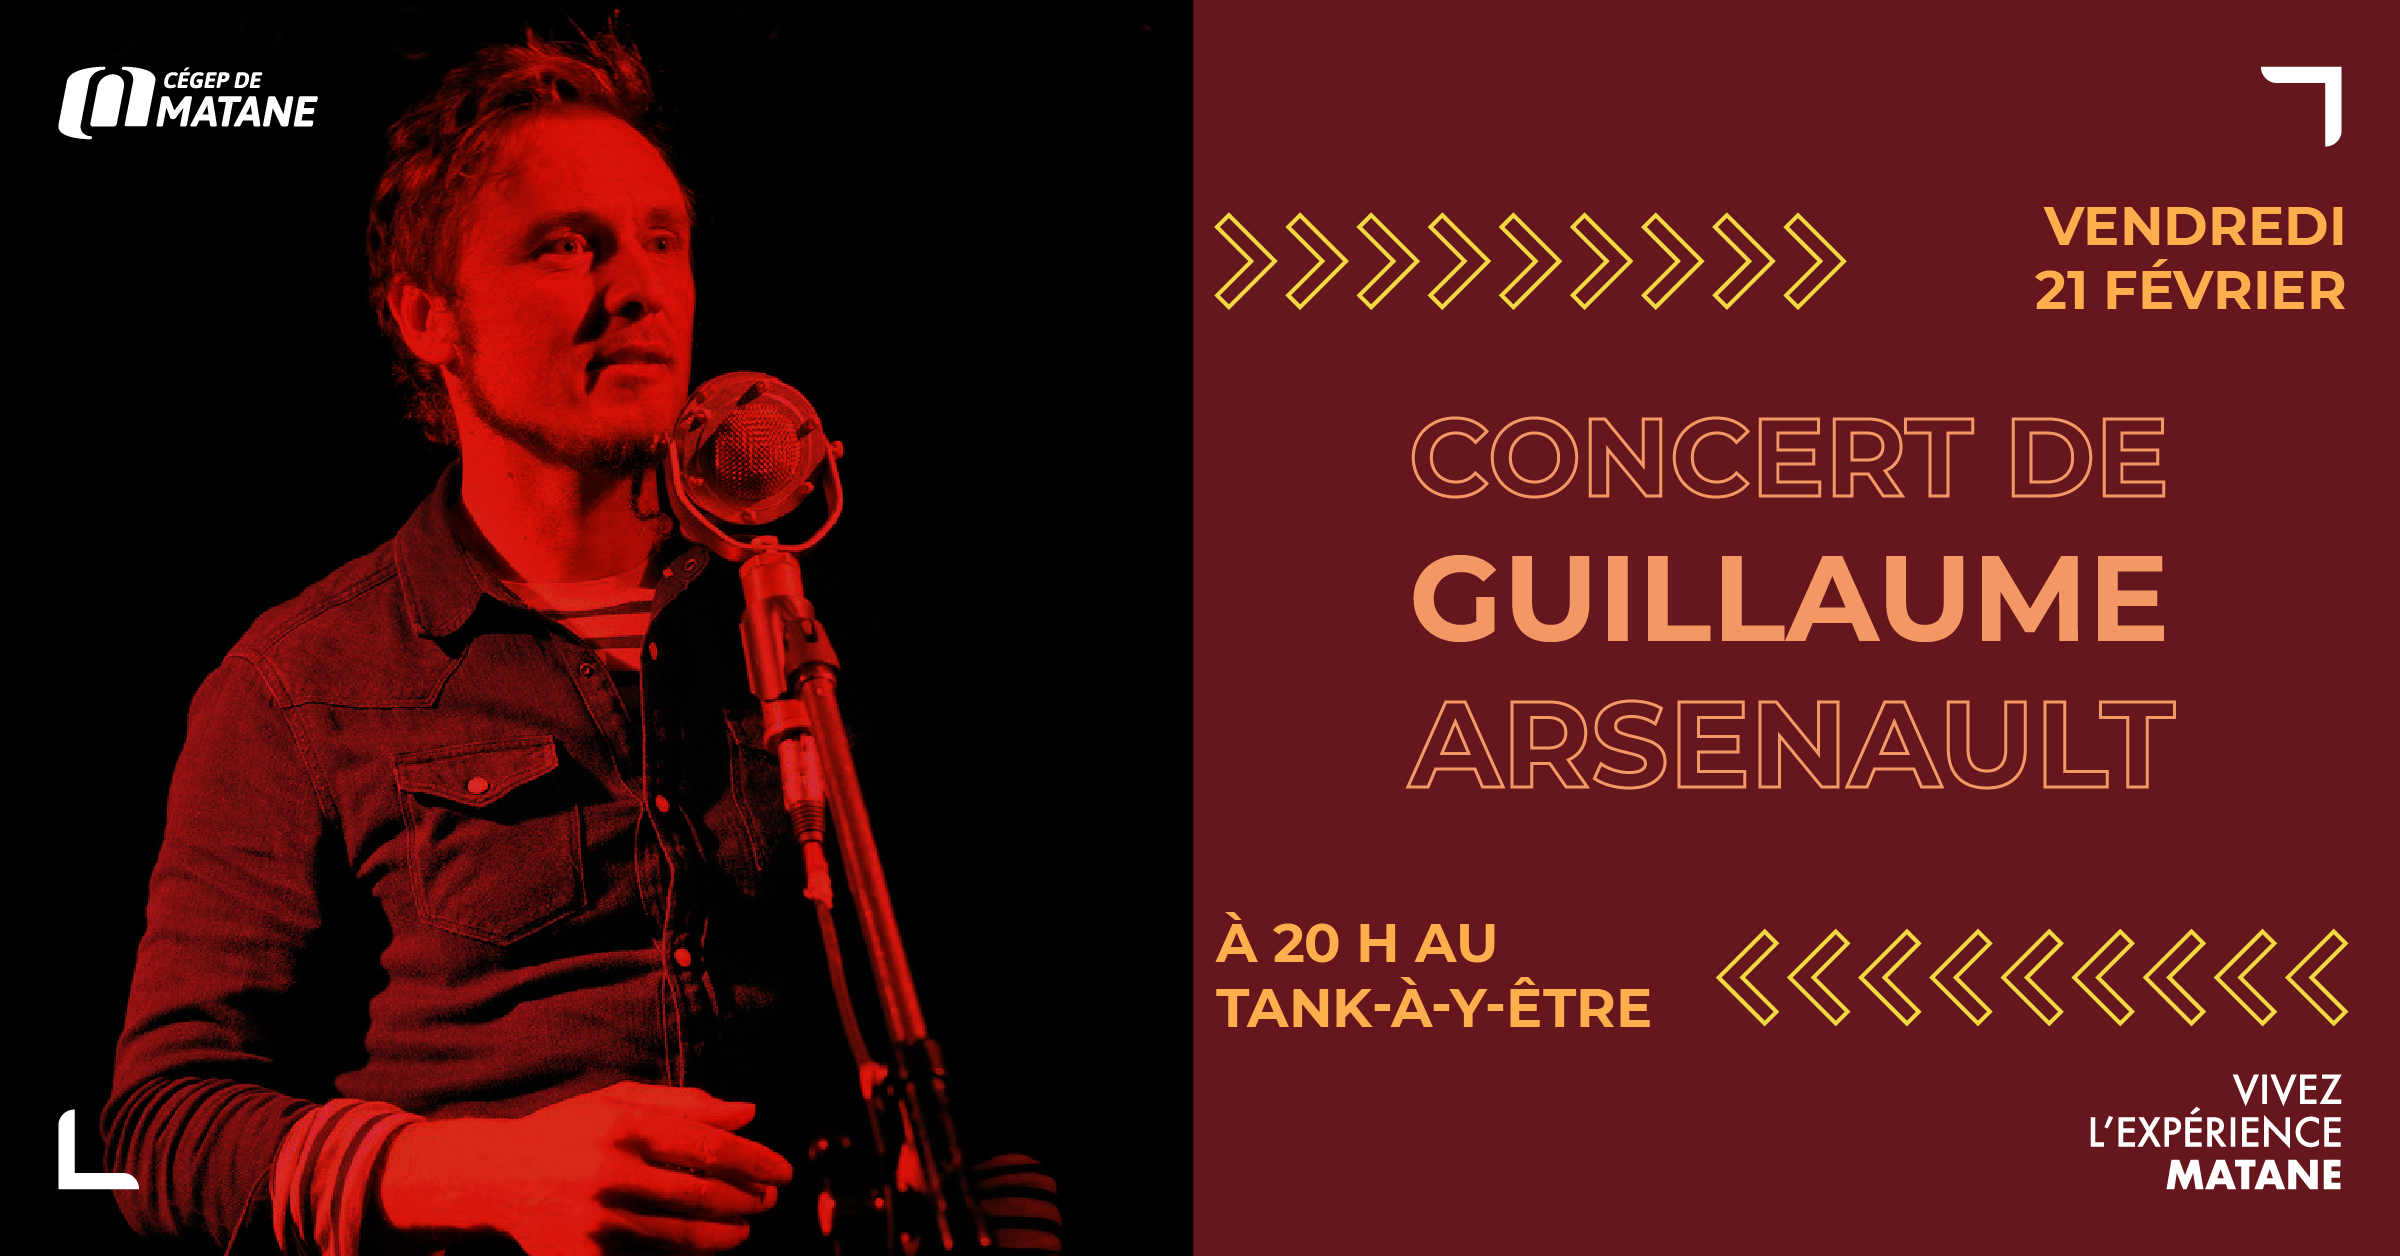 Spectacle de l'auteur-compositeur-interprète Guillaume Arsenault